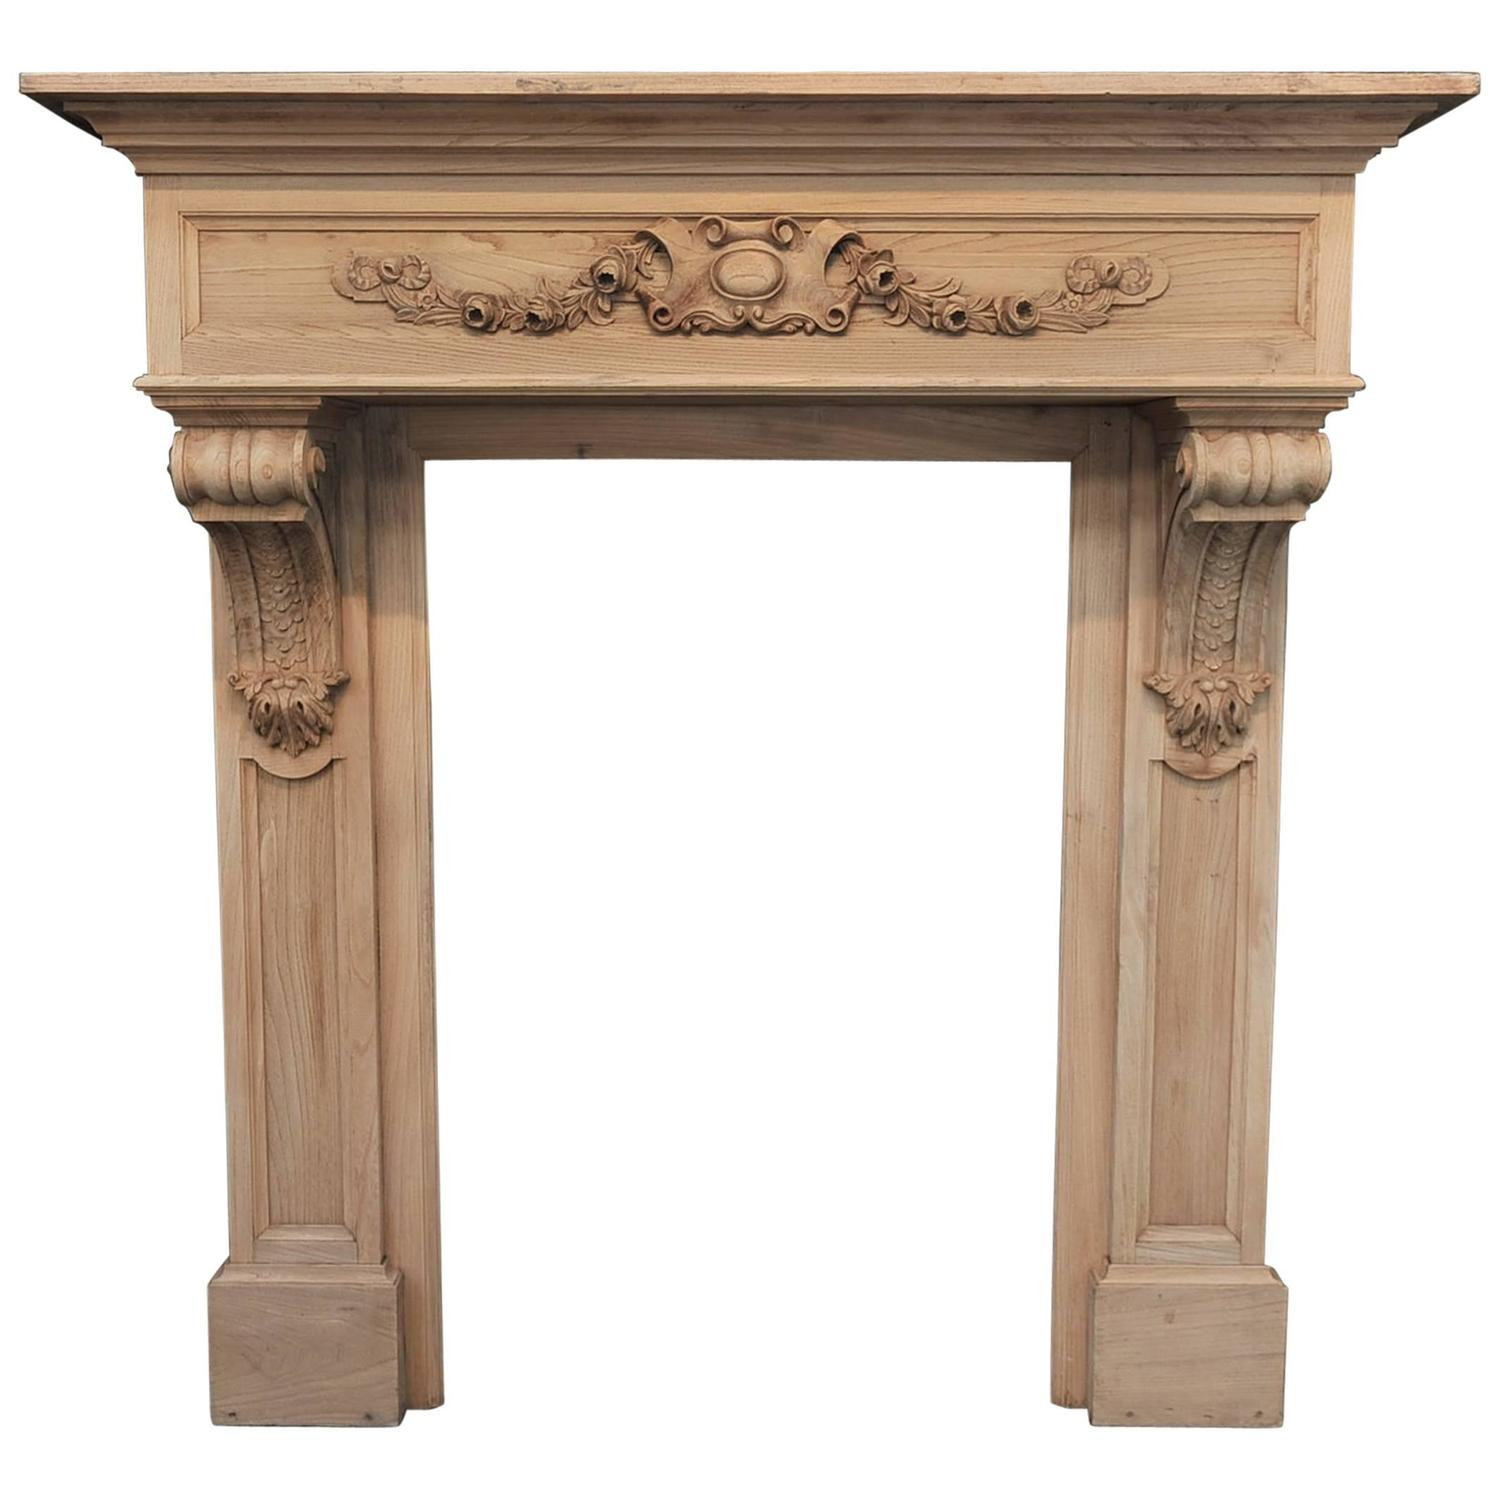 Early s french carved oak fireplace mantel at stdibs